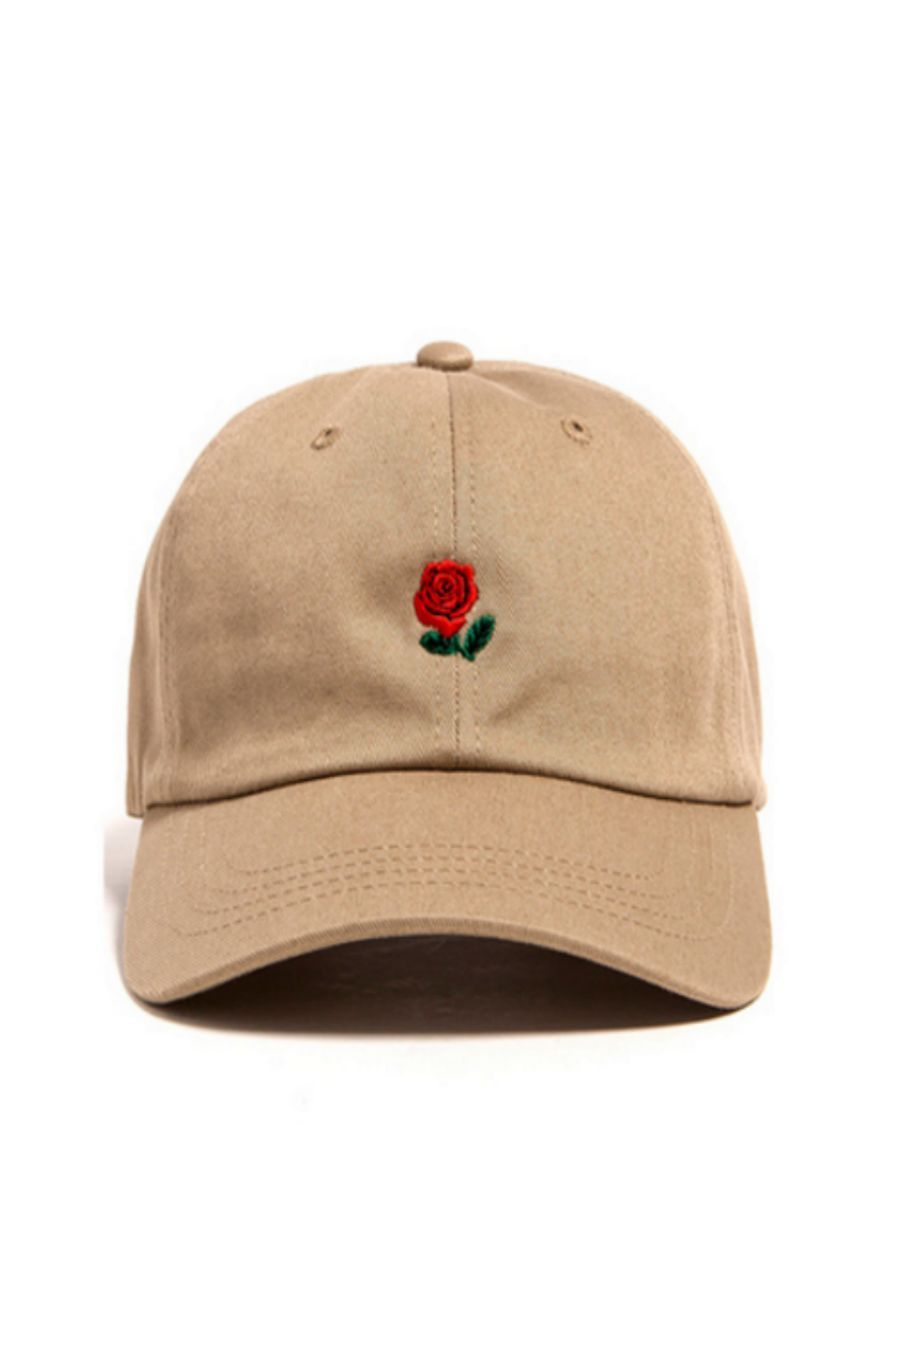 8b082262171 Rose Embroidered Hat In Tan in 2019